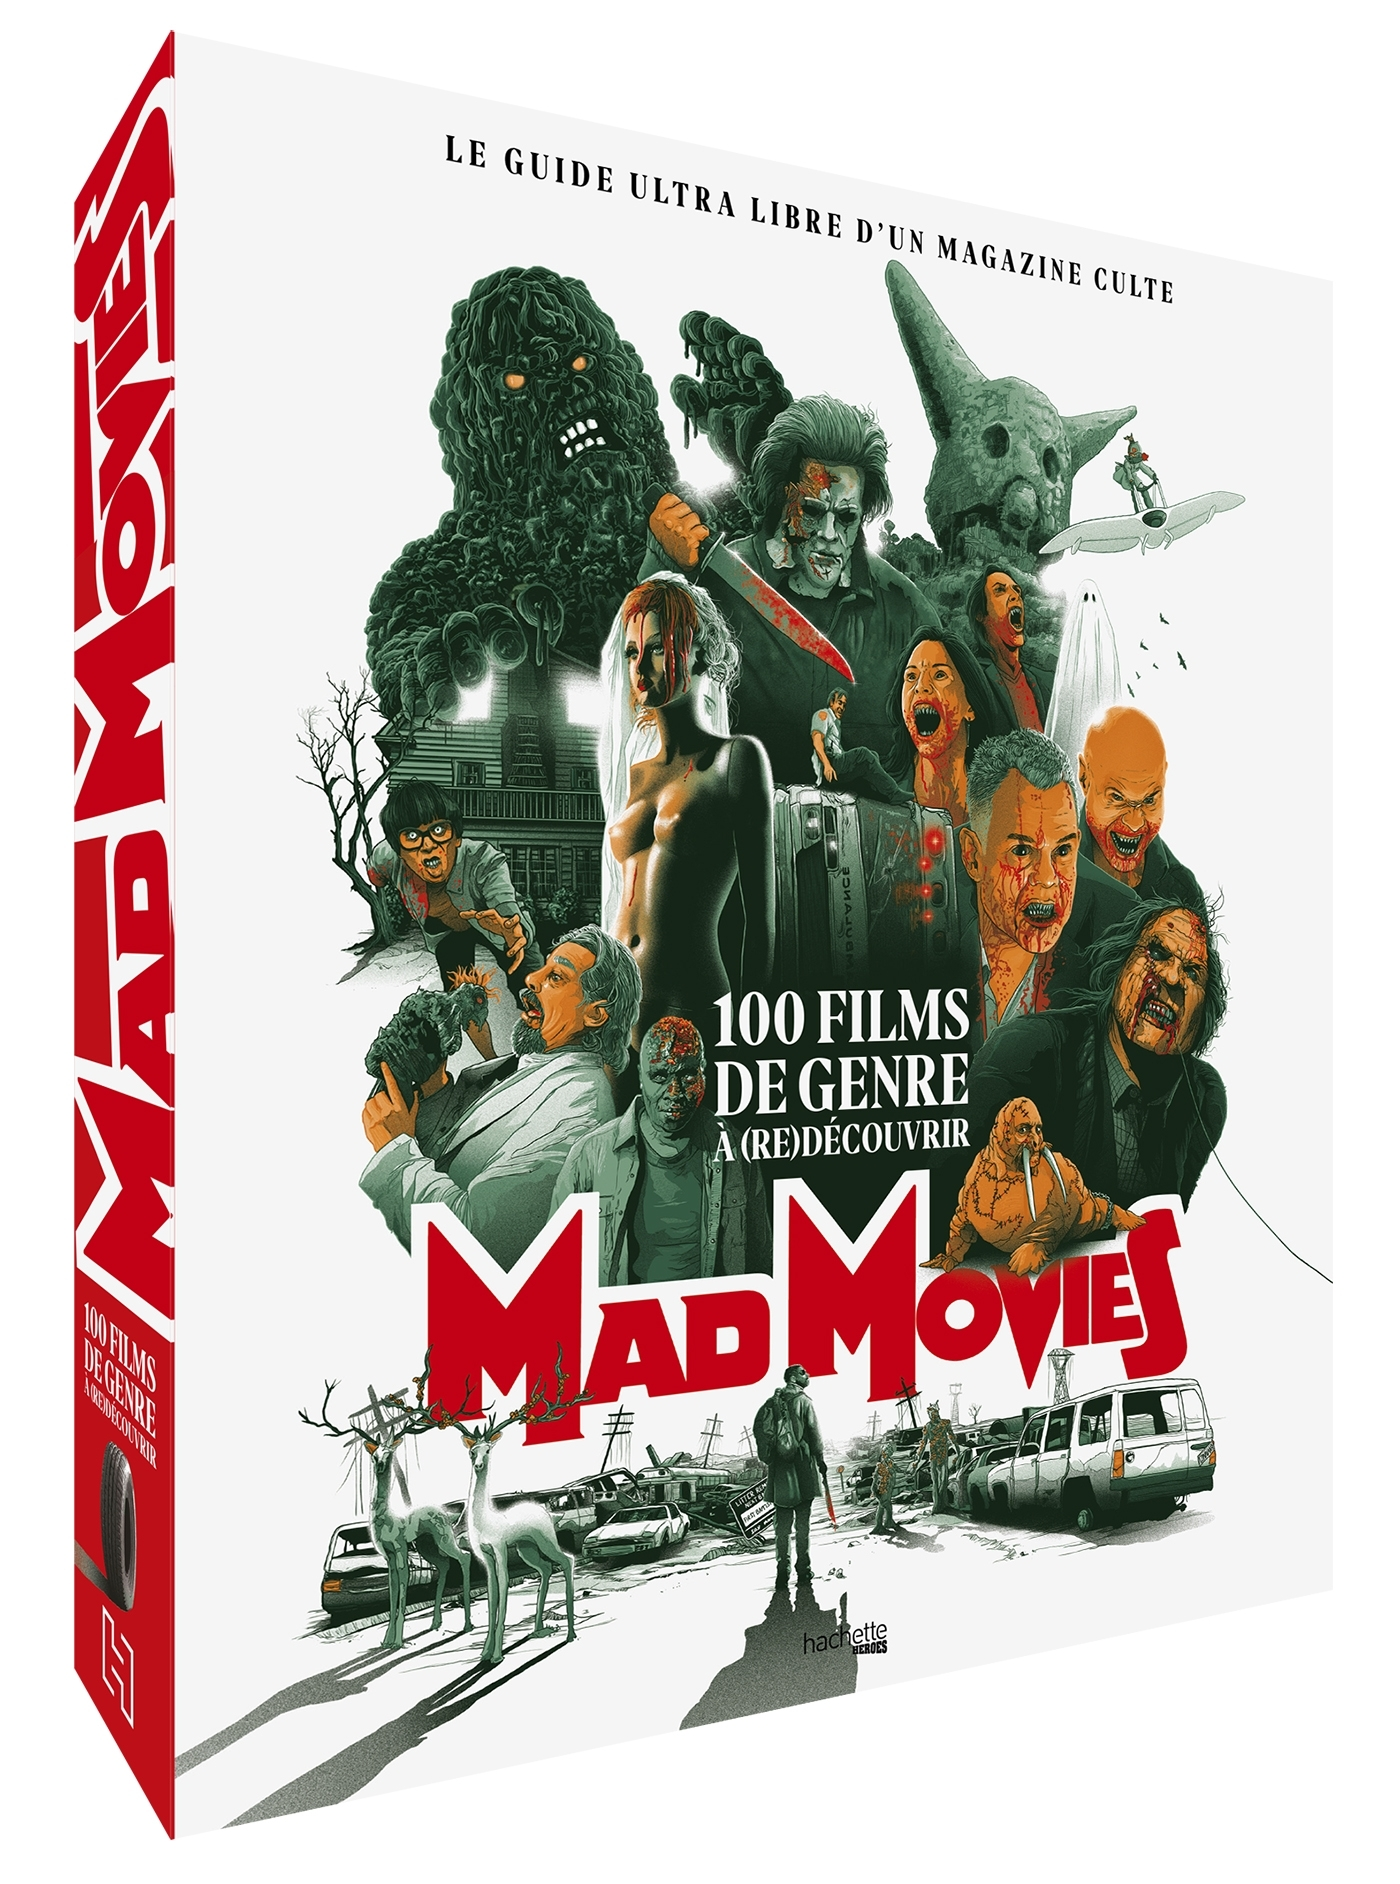 MAD MOVIES - 100 FILMS DE GENRE A (RE)DECOUVRIR - LE GUIDE ULTRA LIBRE D'UN MAGAZINE CULTE